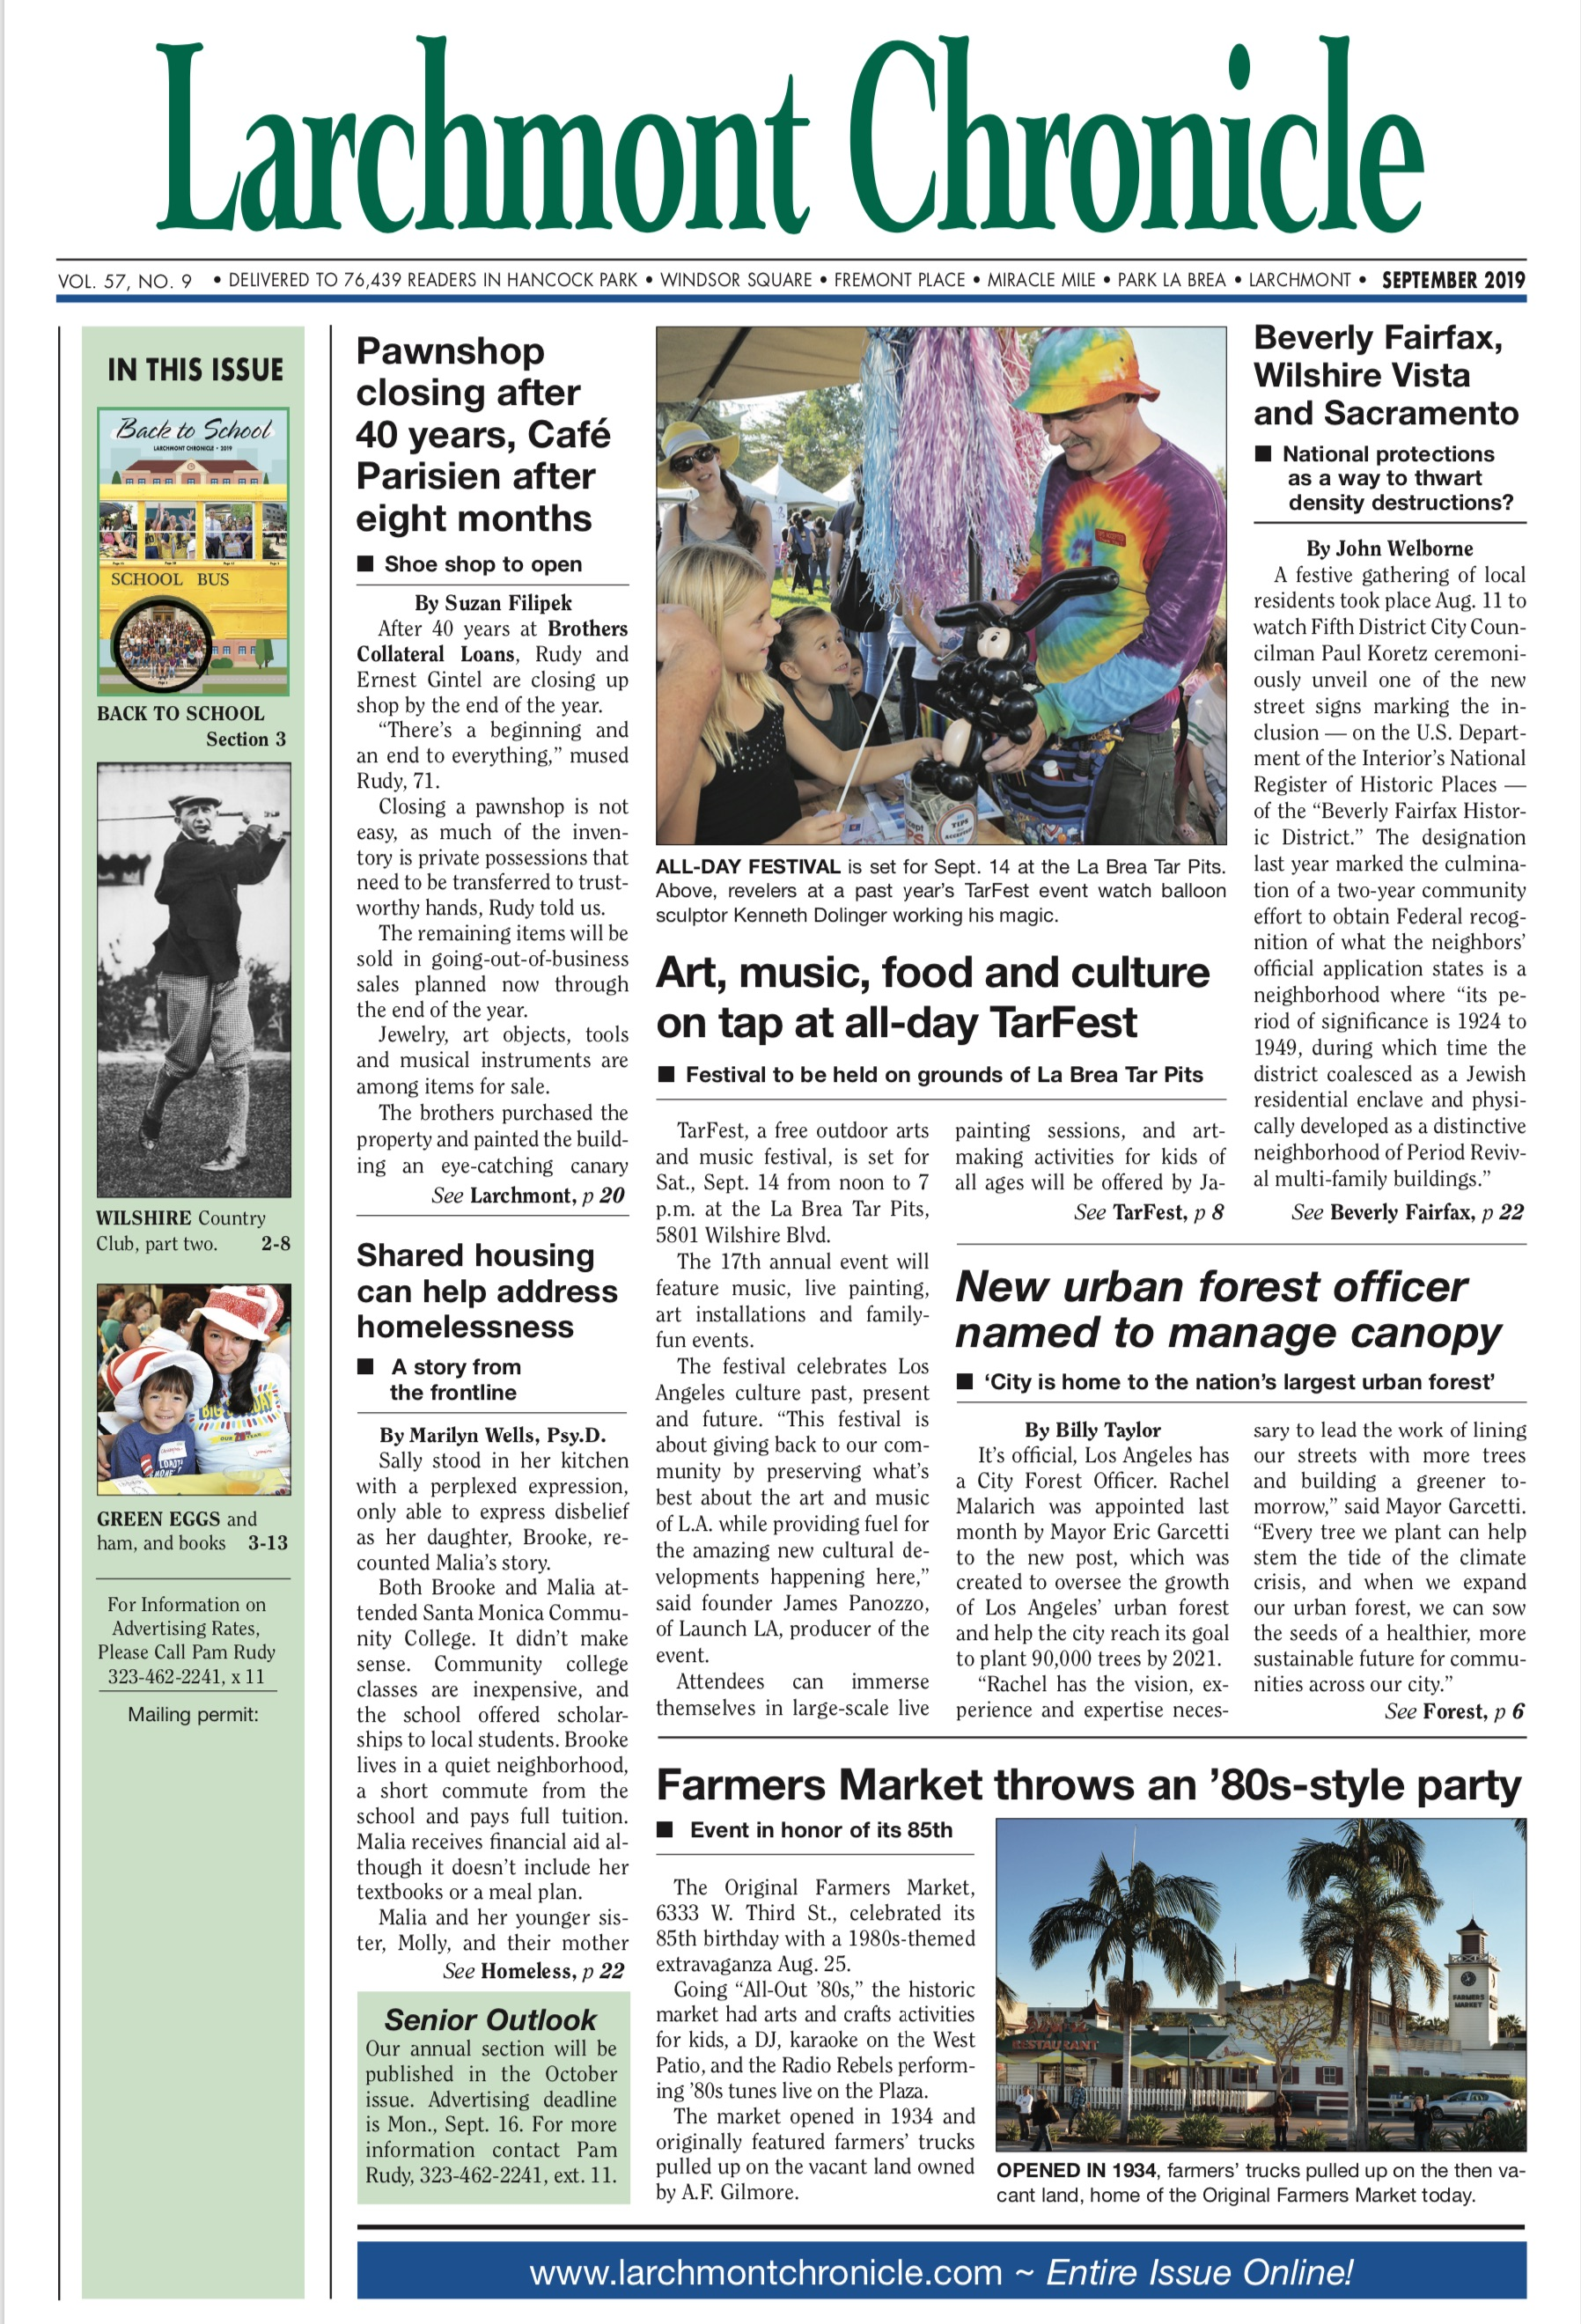 Larchmont Chronicle September 2019 full issue